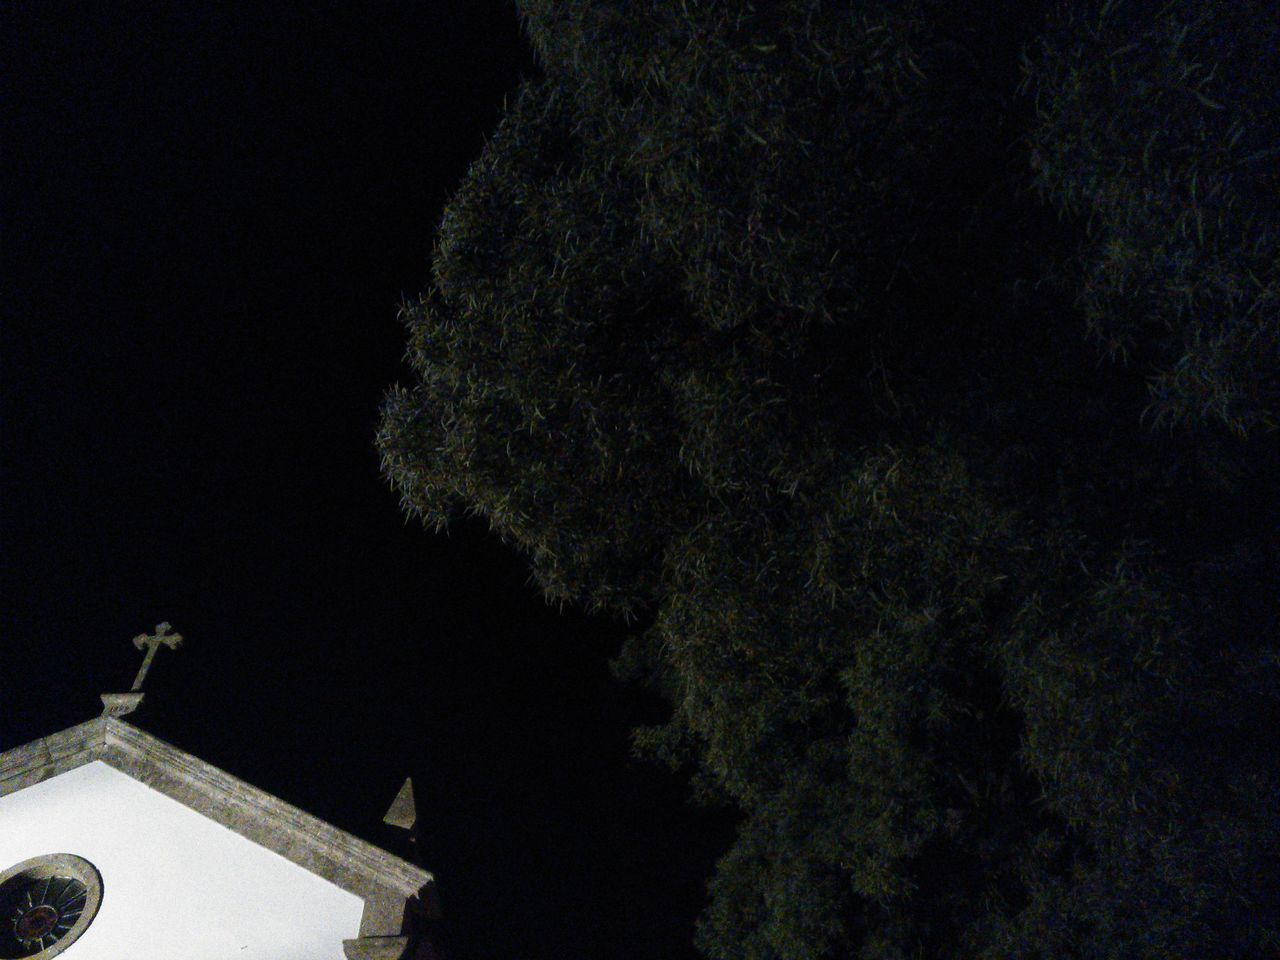 religion, built structure, tree, architecture, place of worship, spirituality, no people, building exterior, low angle view, cross, outdoors, night, nature, sky